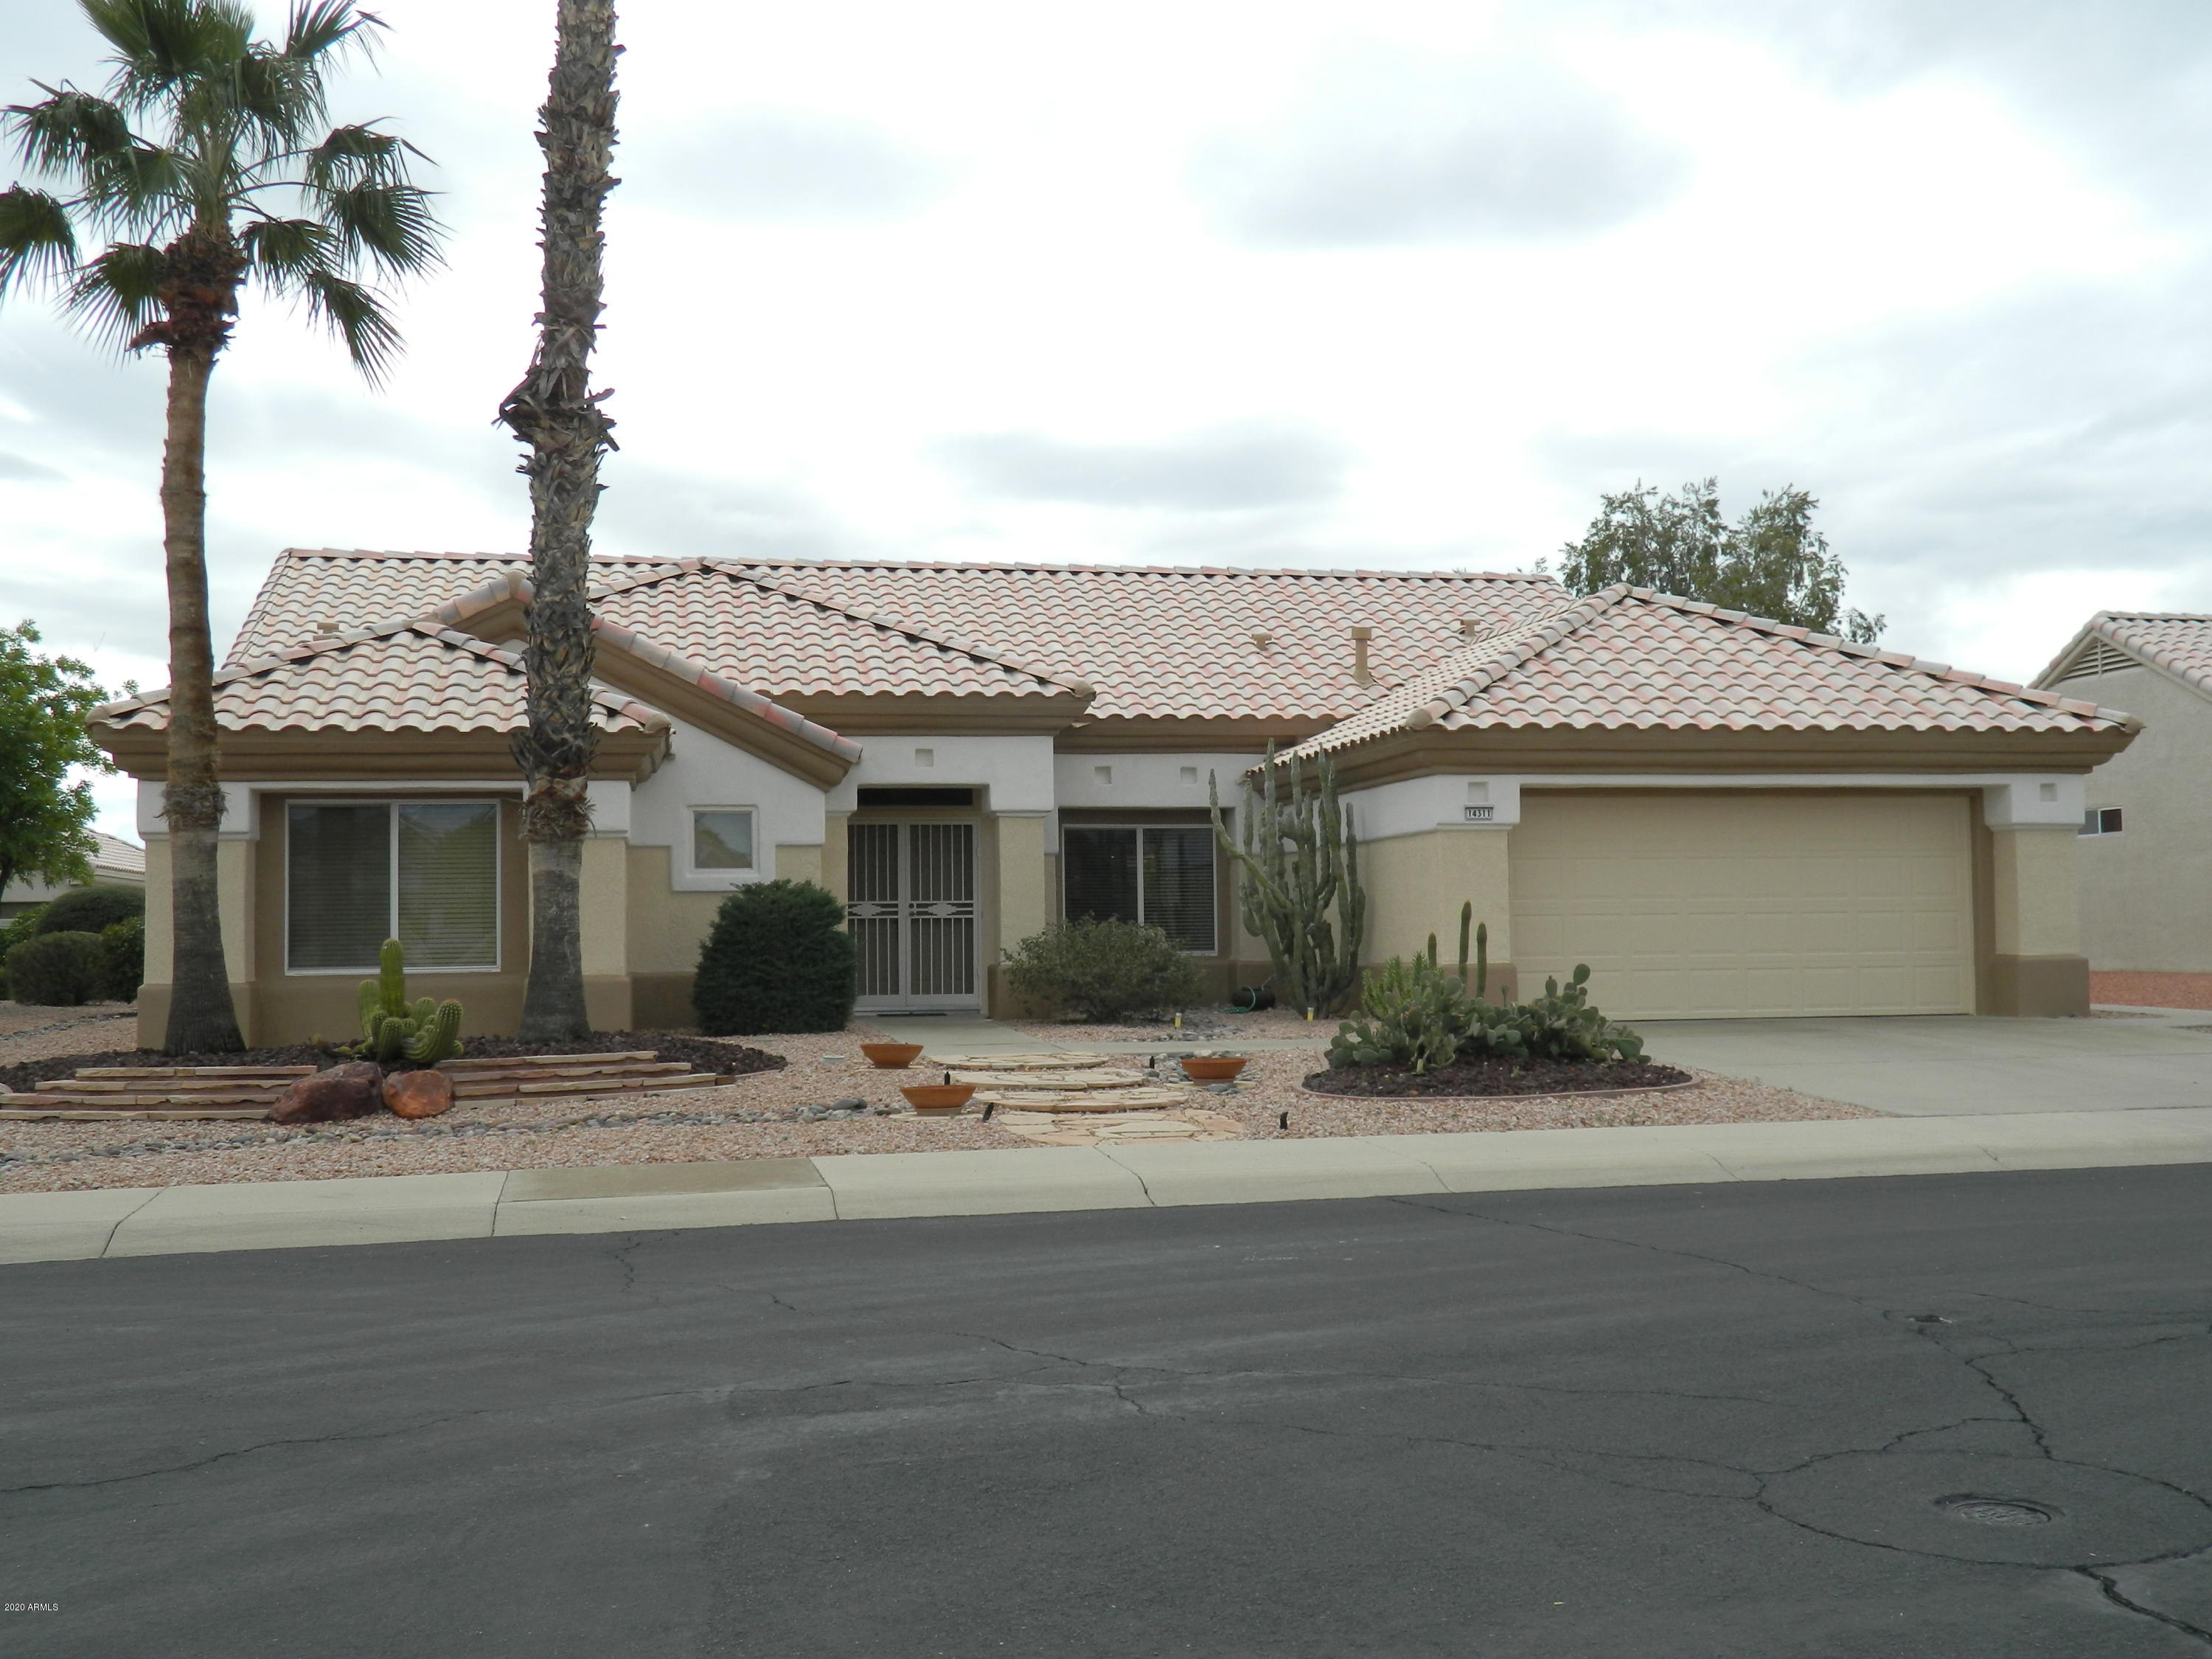 14311 W Colt Lane, Sun City West AZ 85375 - Photo 1